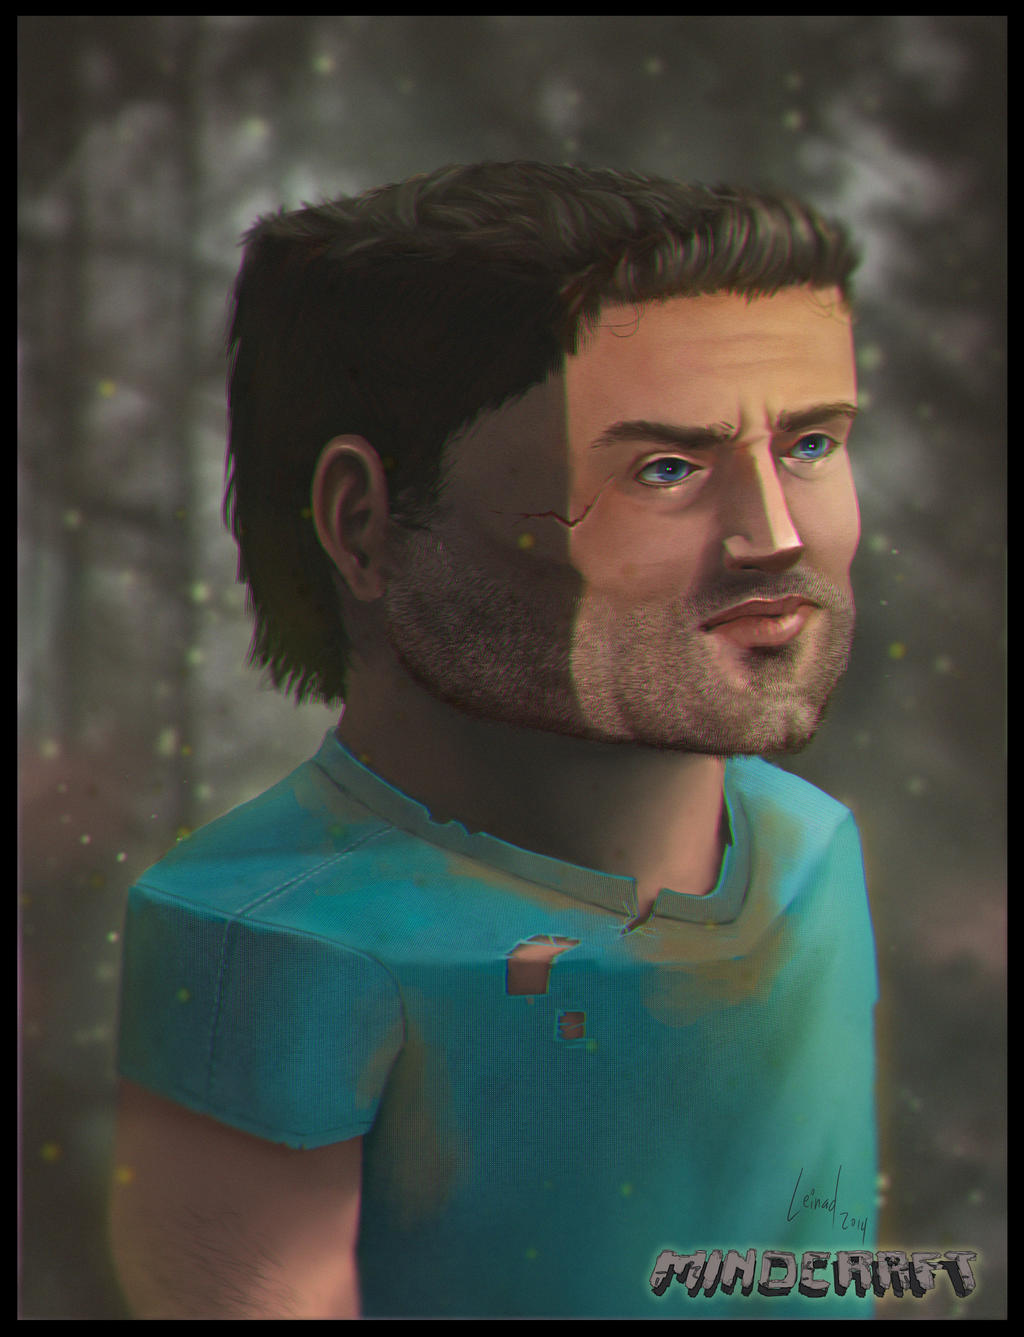 Steve in real life by DanielPLackey on DeviantArt